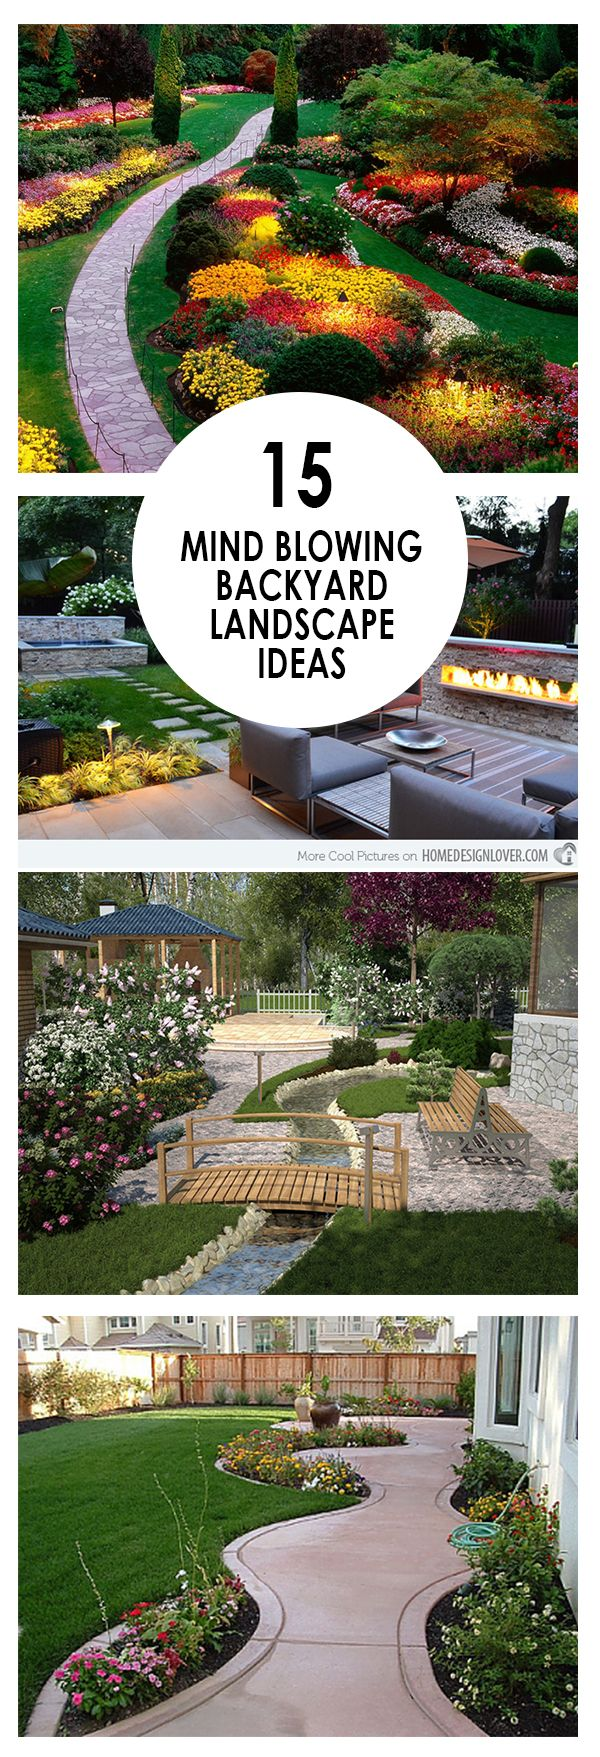 15 mind blowing backyard landscape ideas - Garden Ideas Backyard